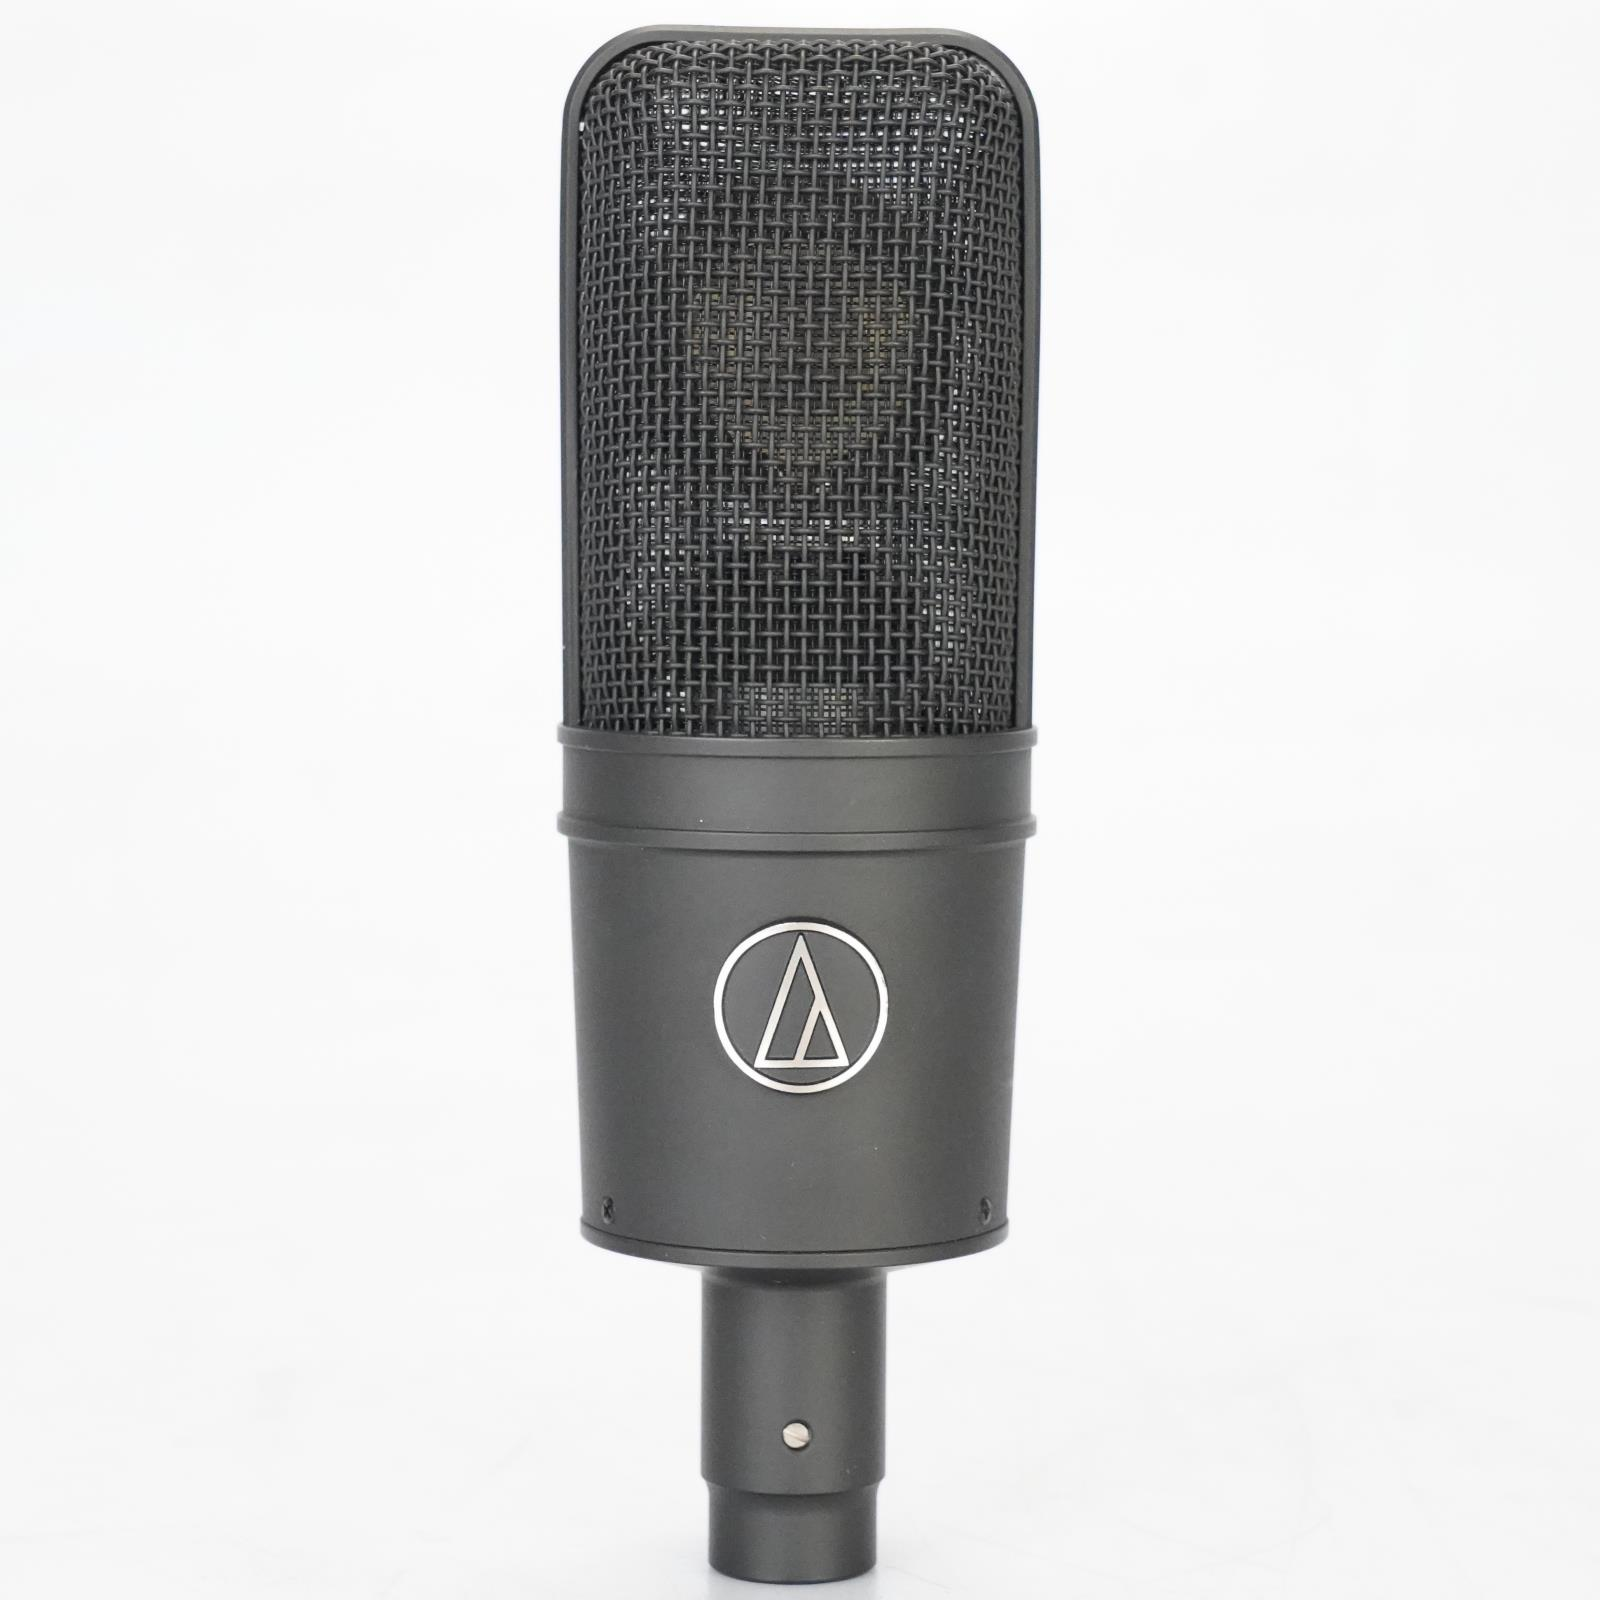 Audio Technica AT4033 Cardioid Condenser Microphone Ed Cherney #39013